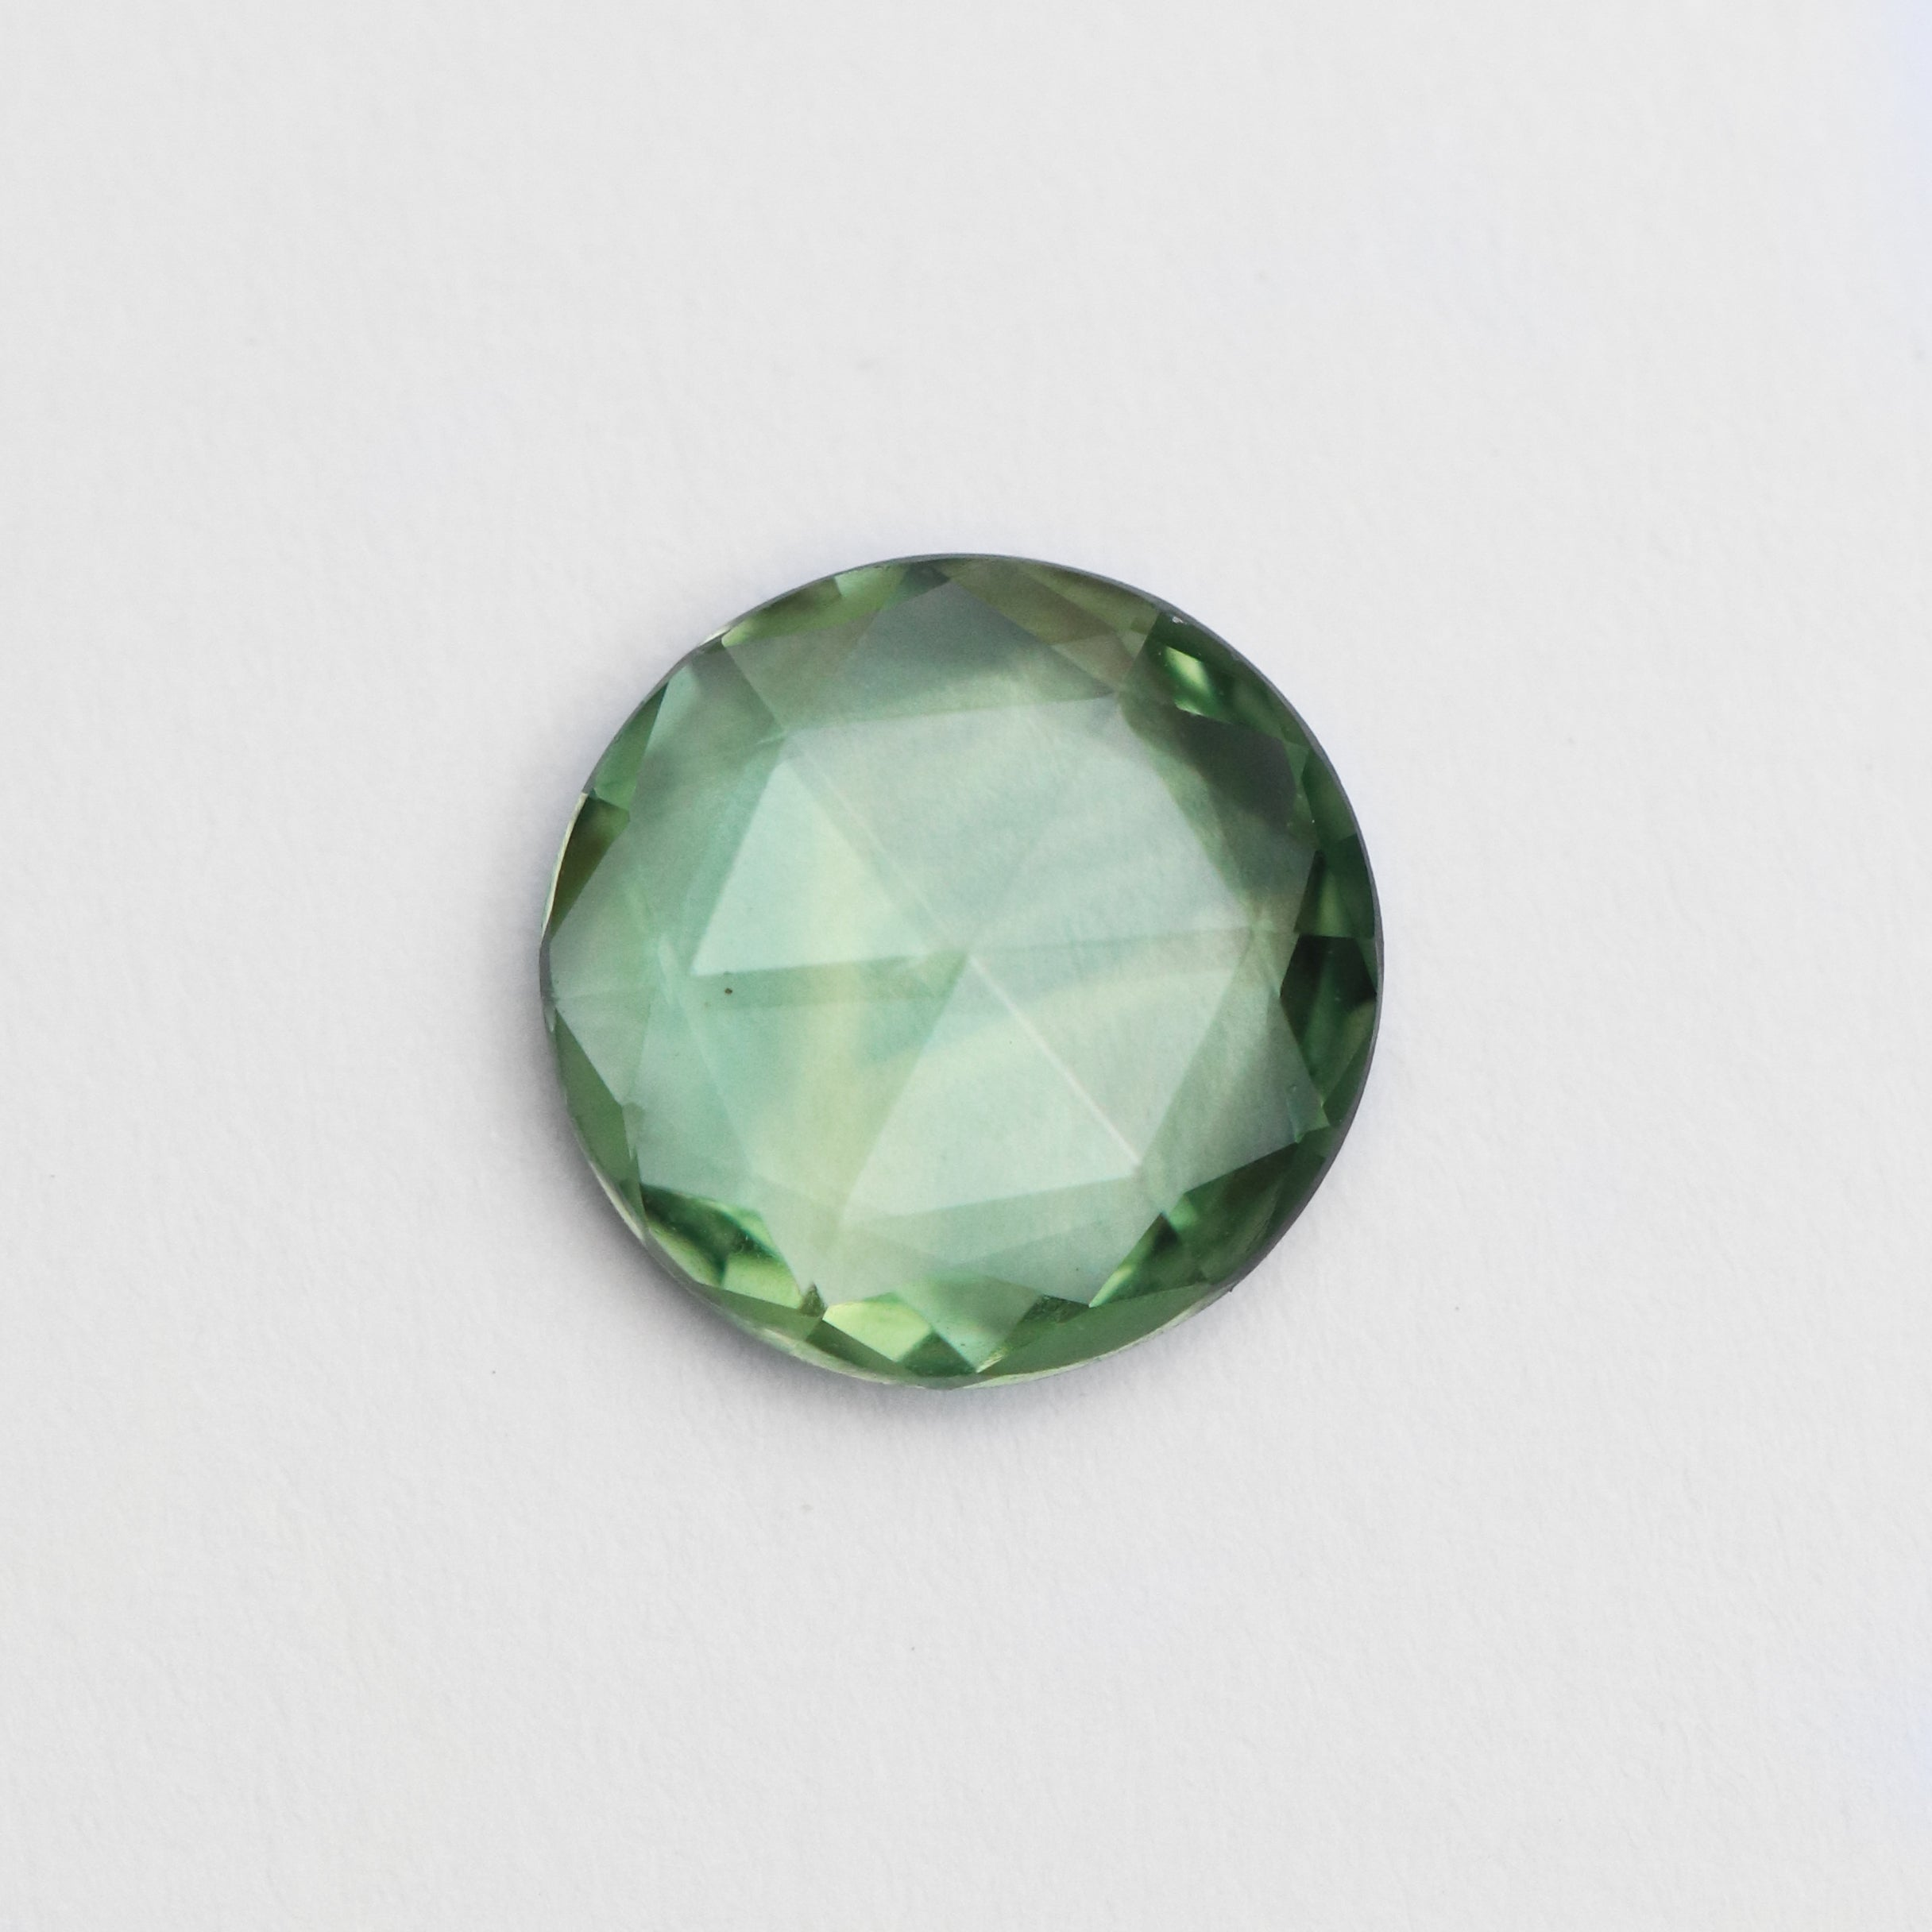 1.19 carat round rose cut green teal Sapphire - inventory code: GRSA119 - Salt & Pepper Celestial Diamond Engagement Rings and Wedding Bands  by Midwinter Co.